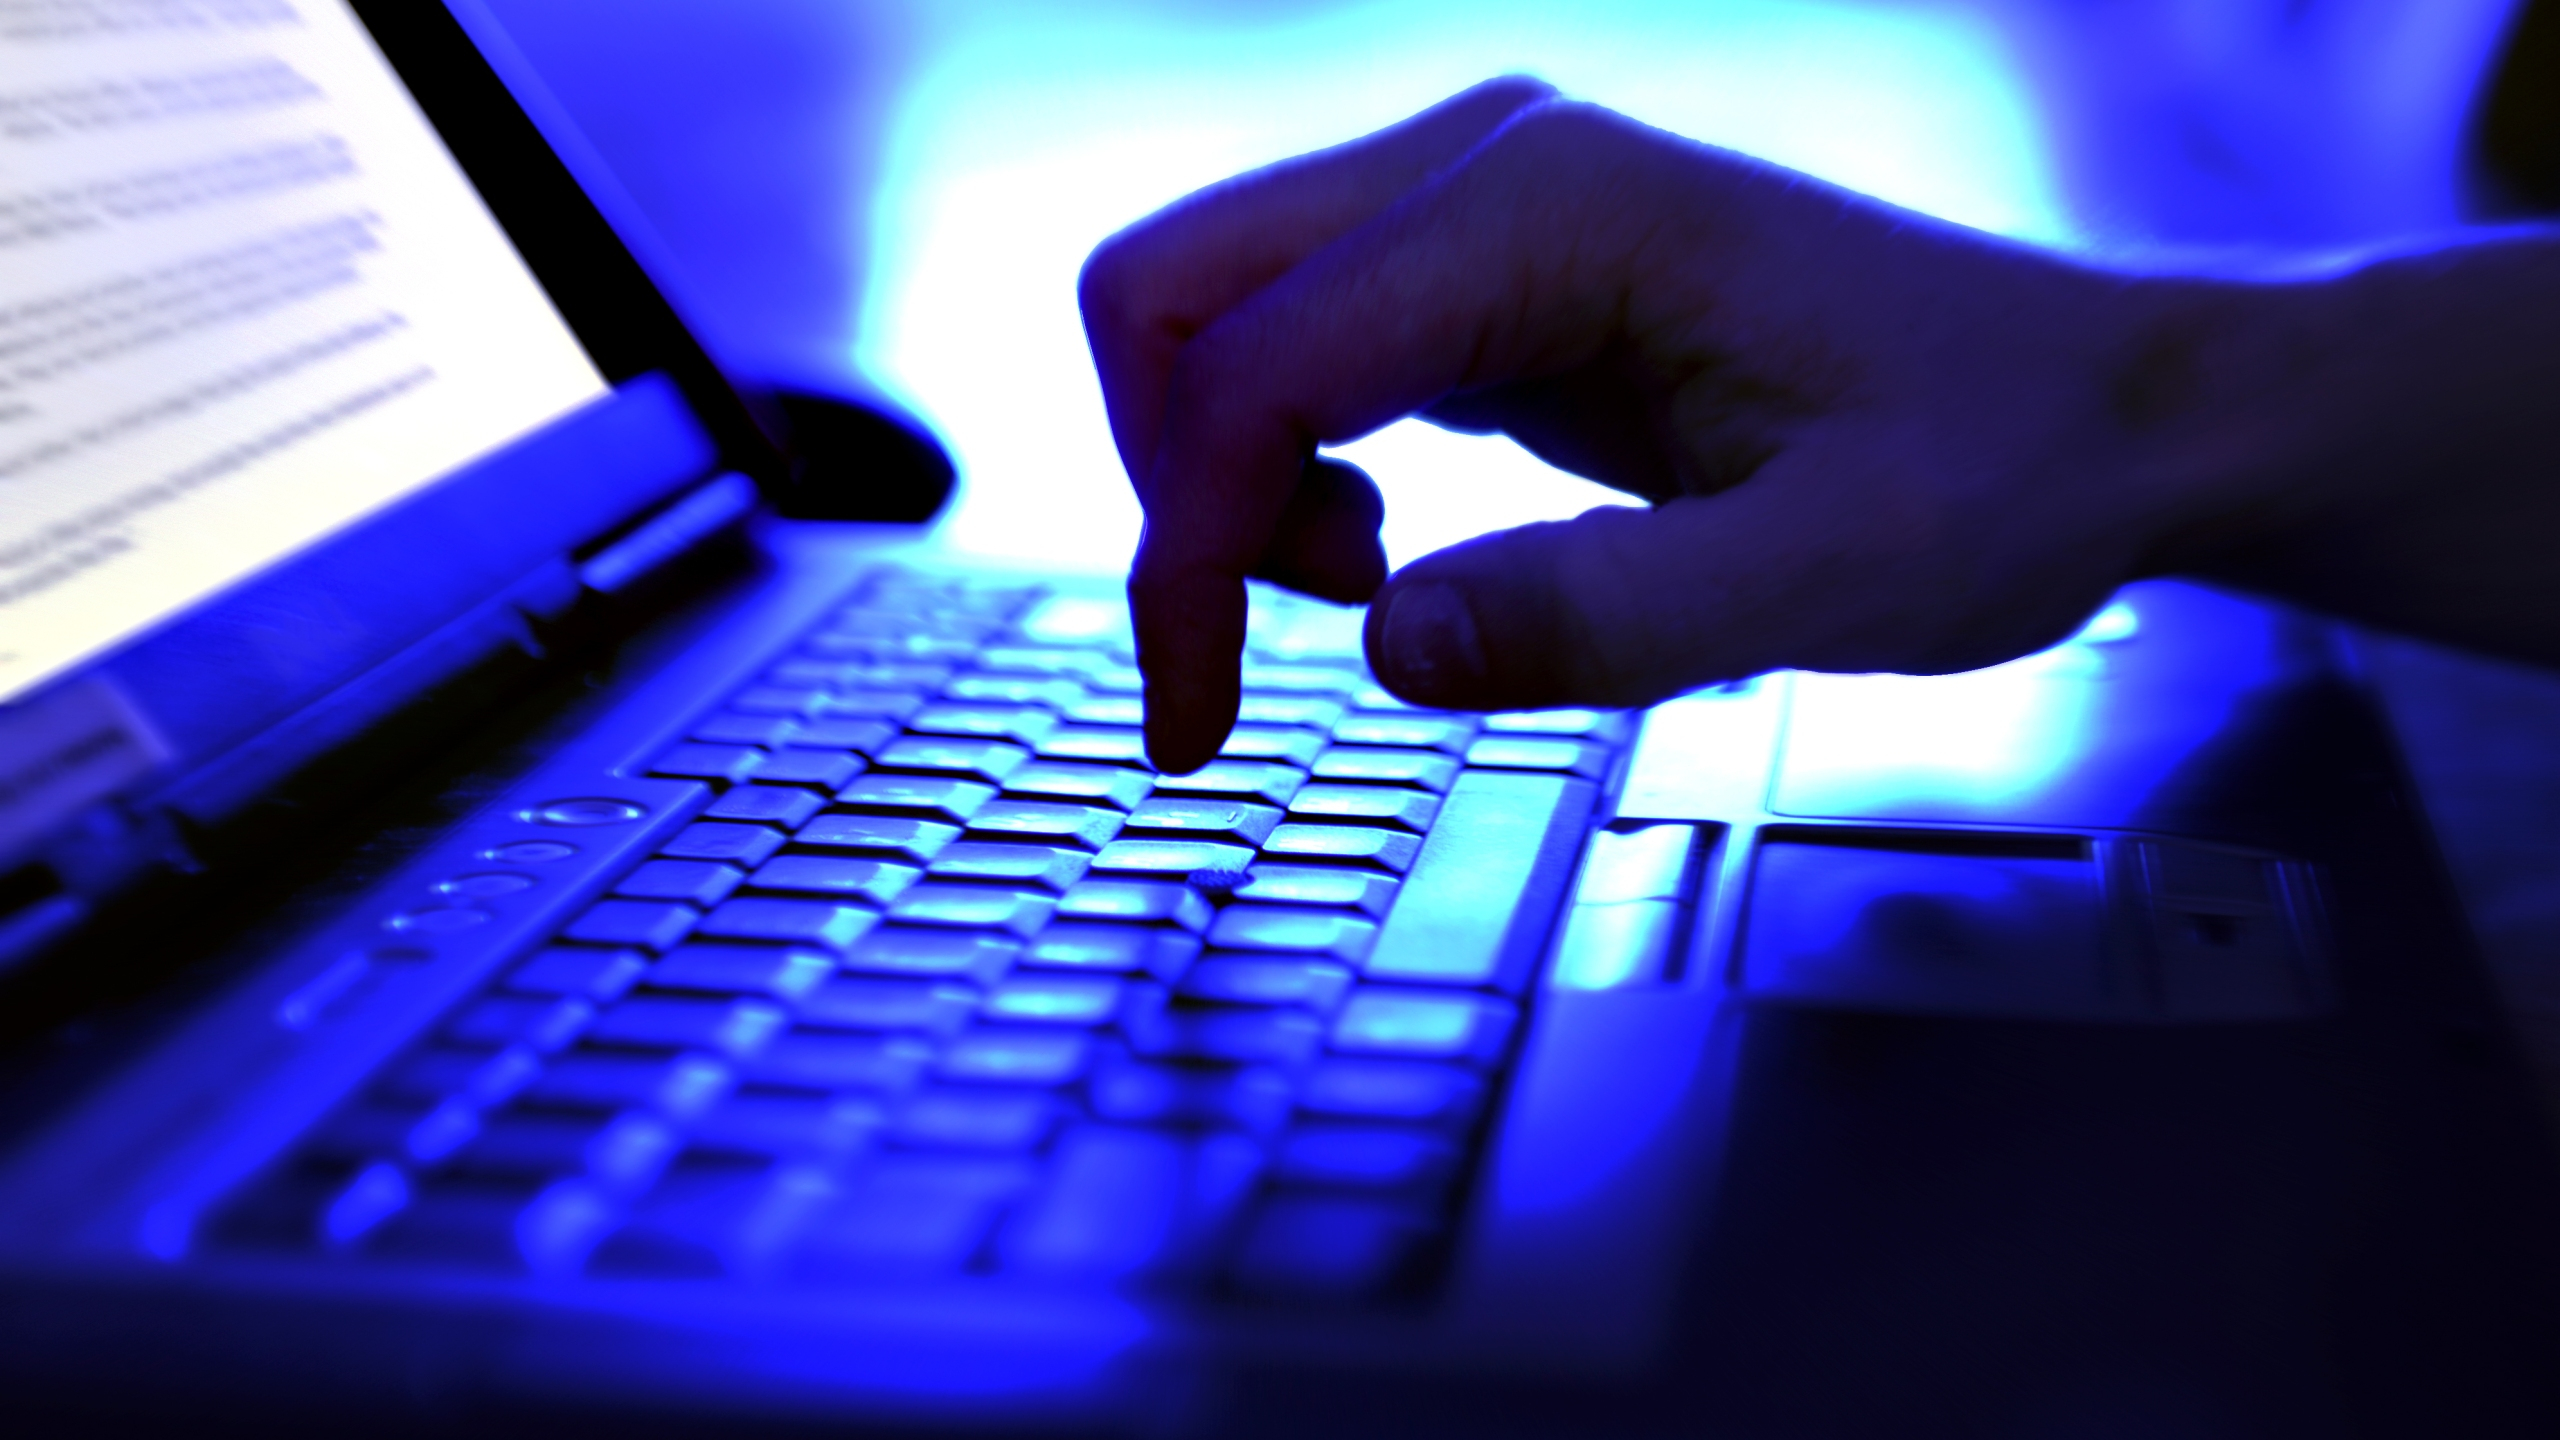 A person is seen typing on a computer. (Credit: Getty Images)